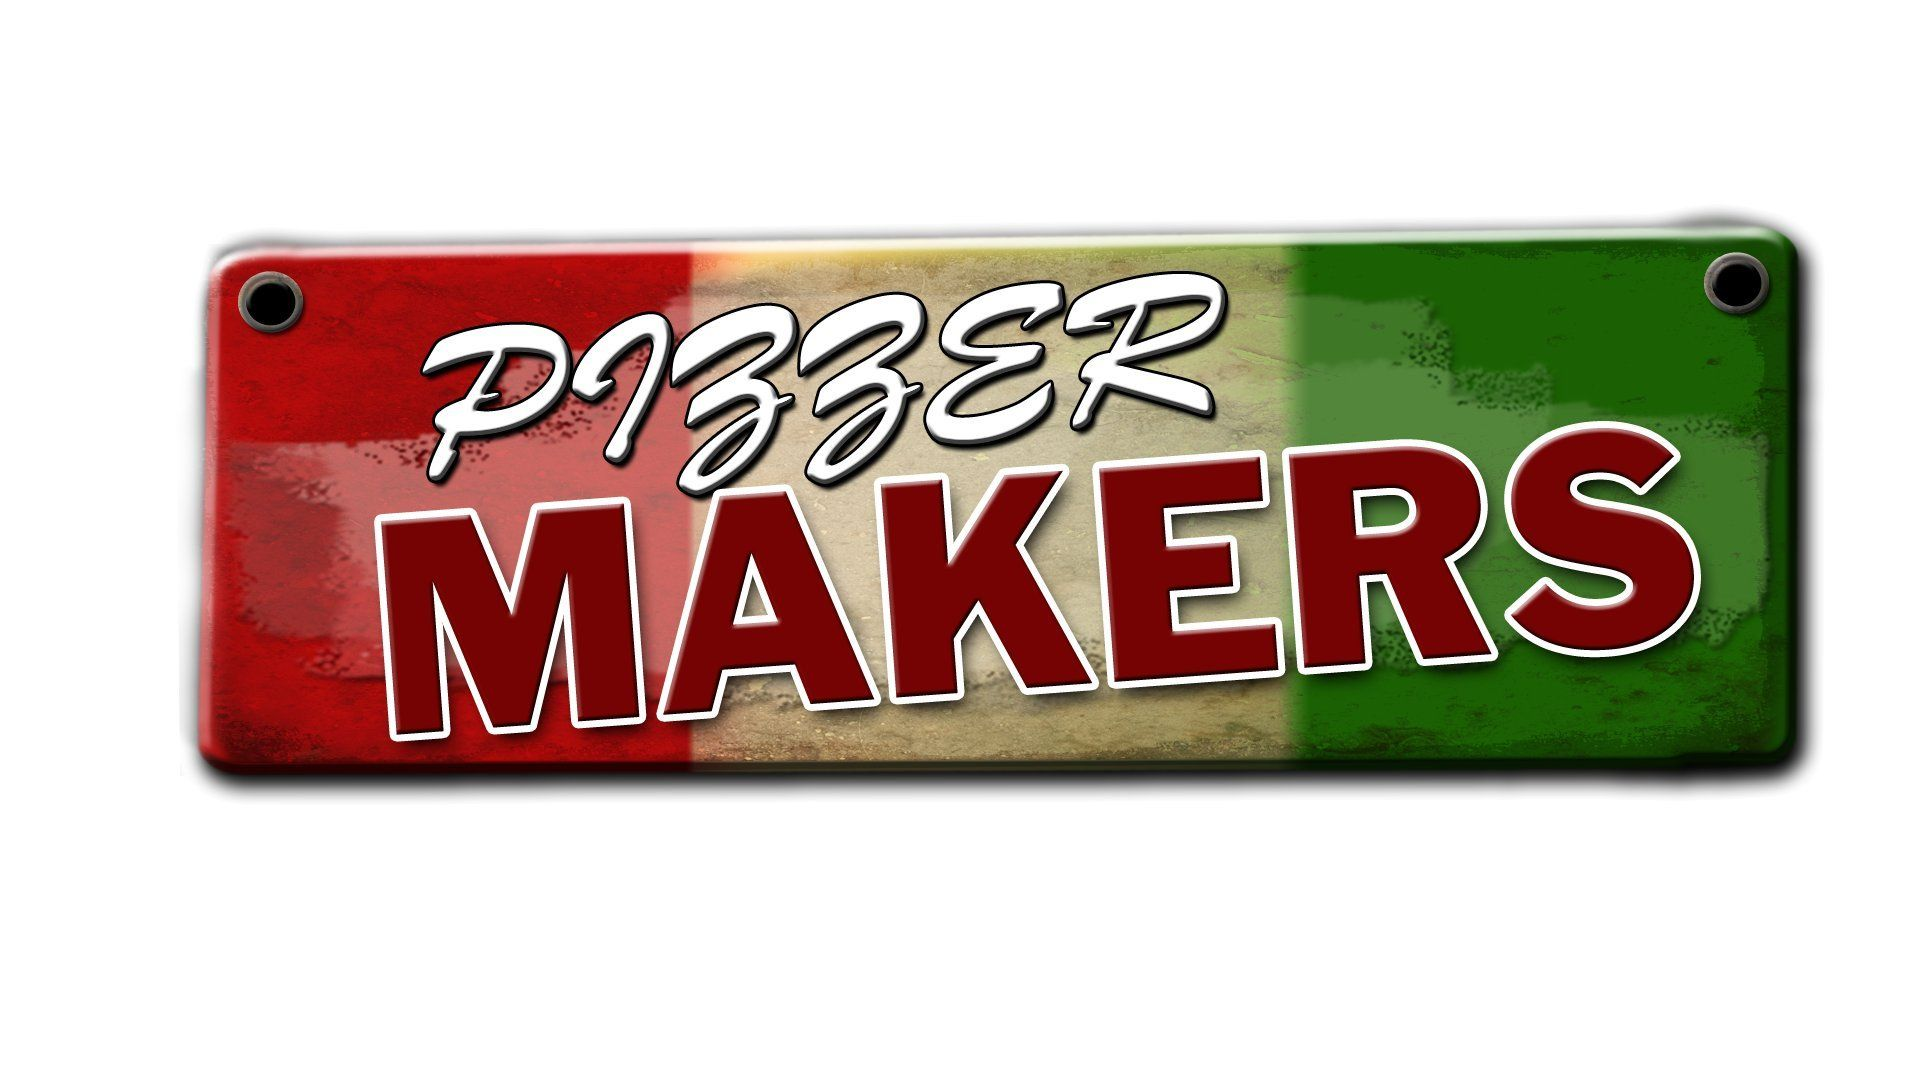 pizzer makers logo by robert apse